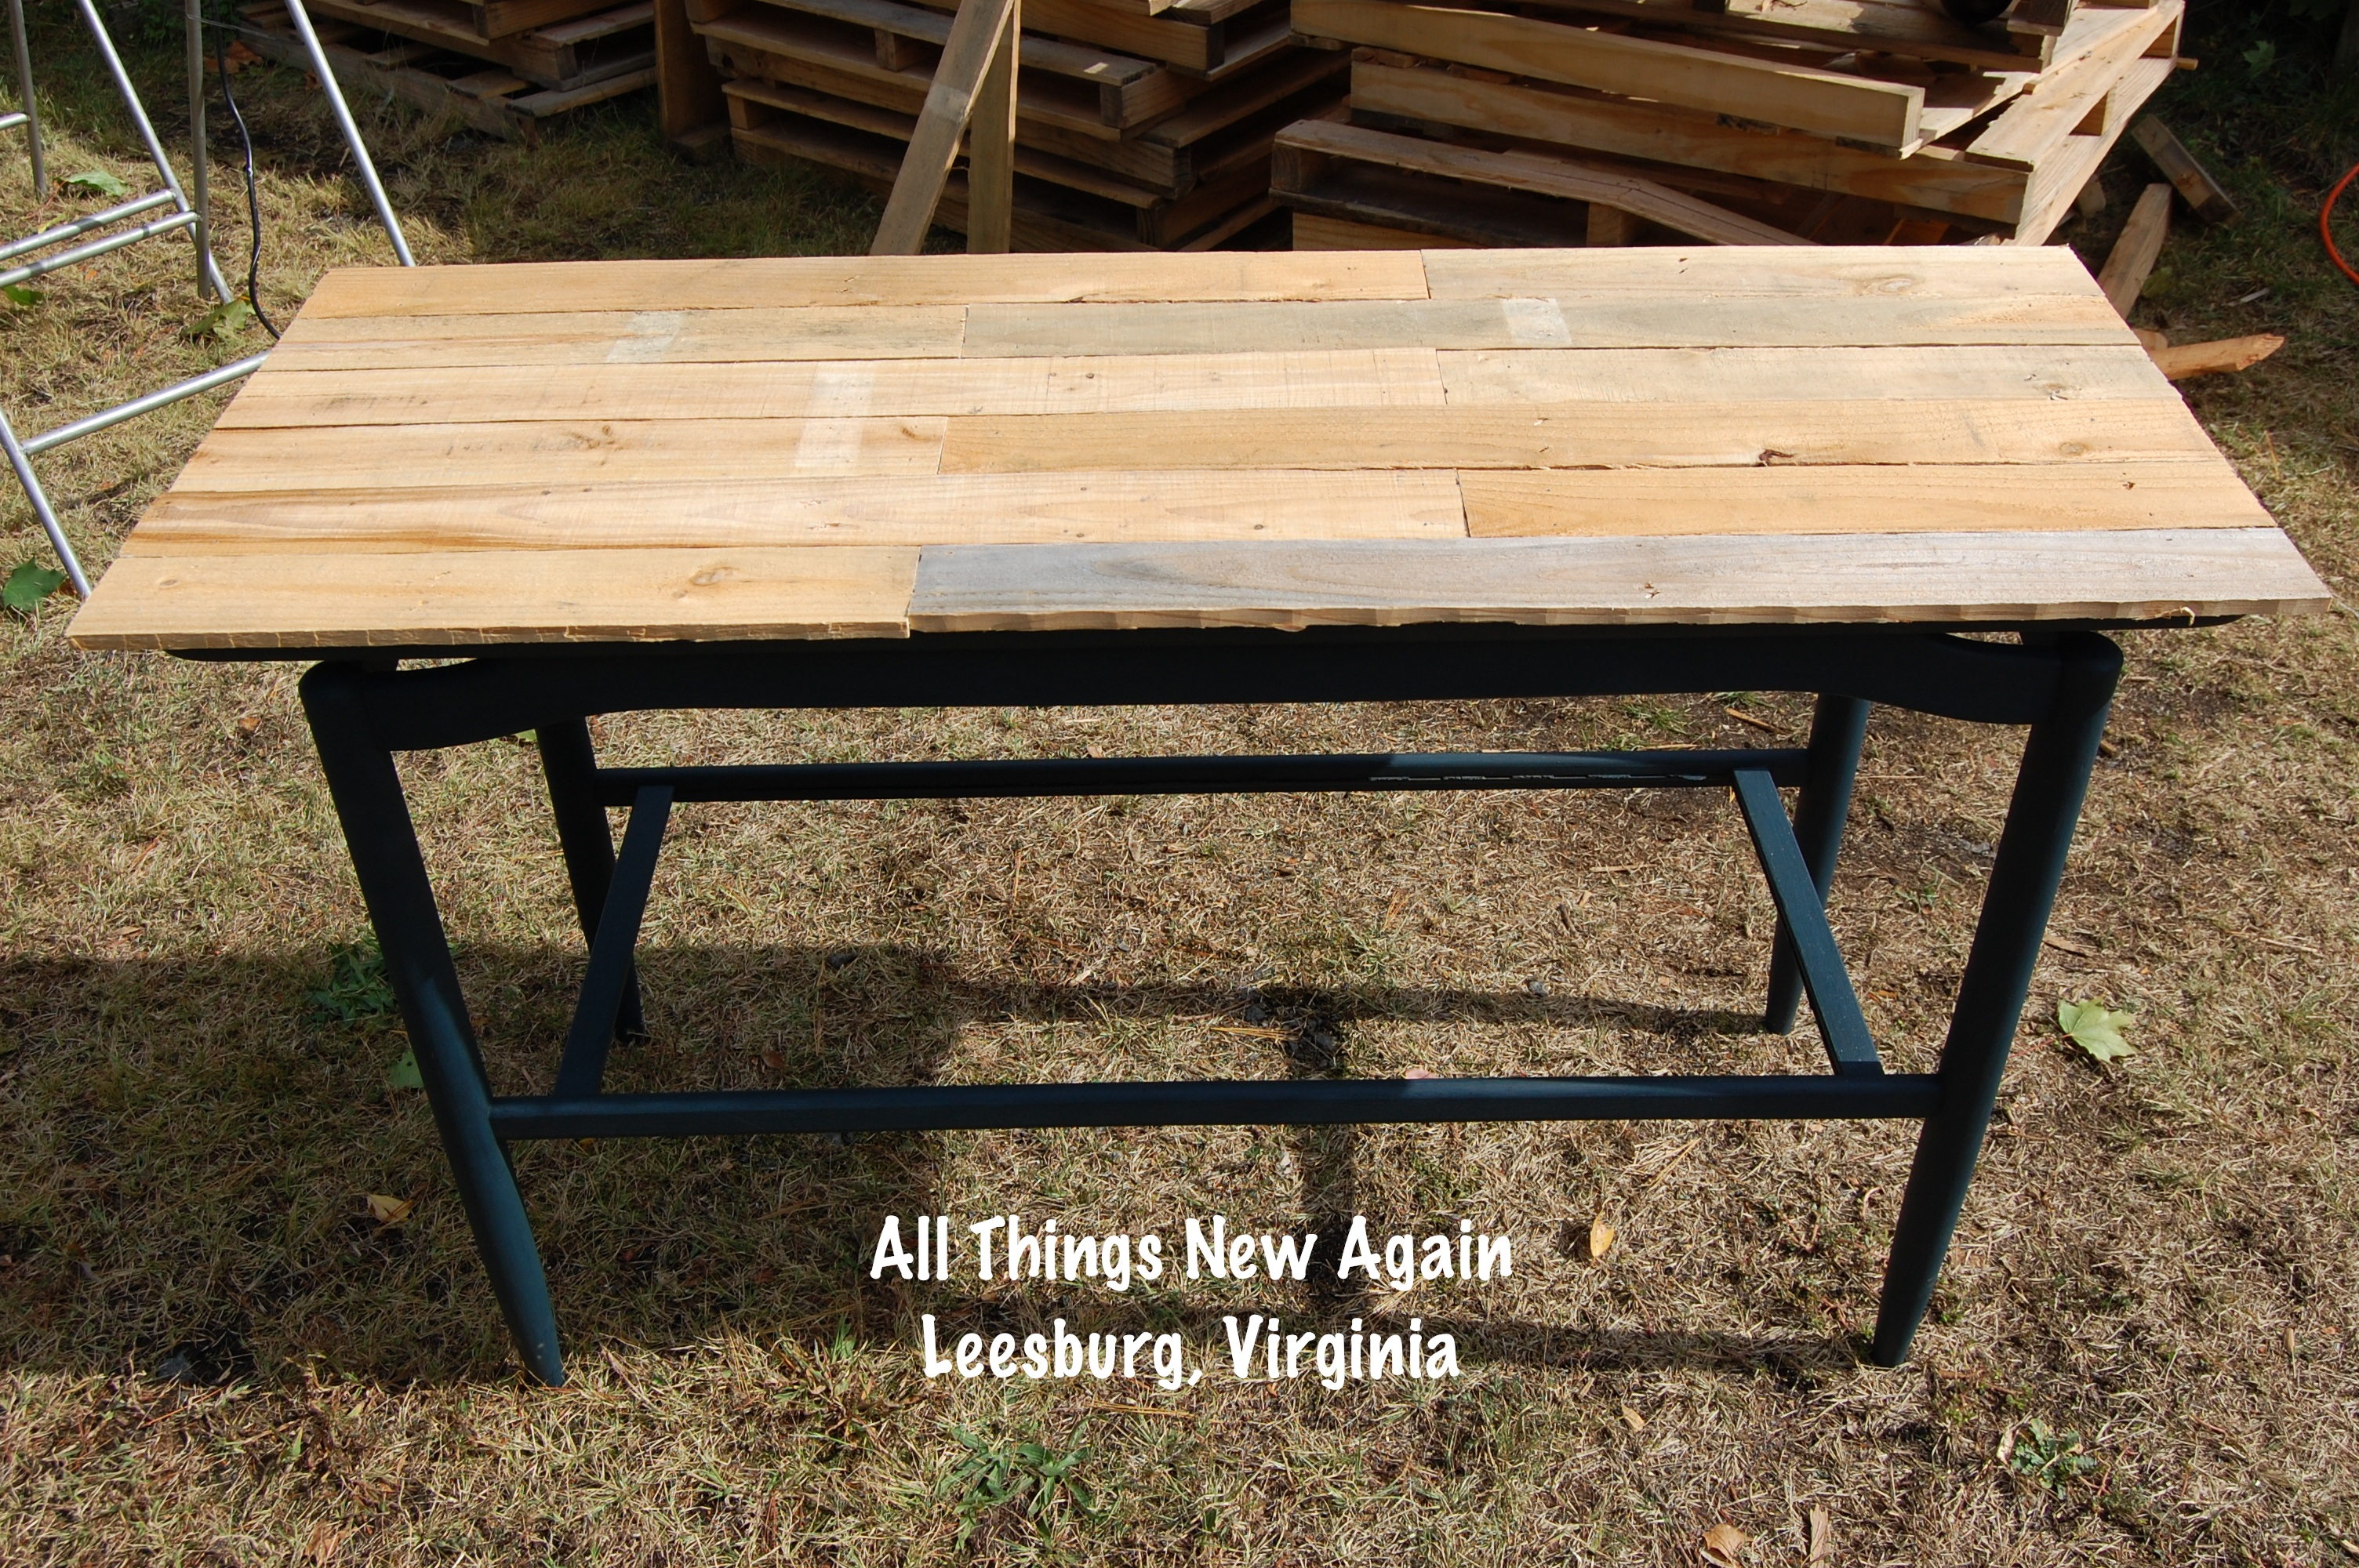 How To Make A Wooden Table Top Jump, Woodworking Schools ...